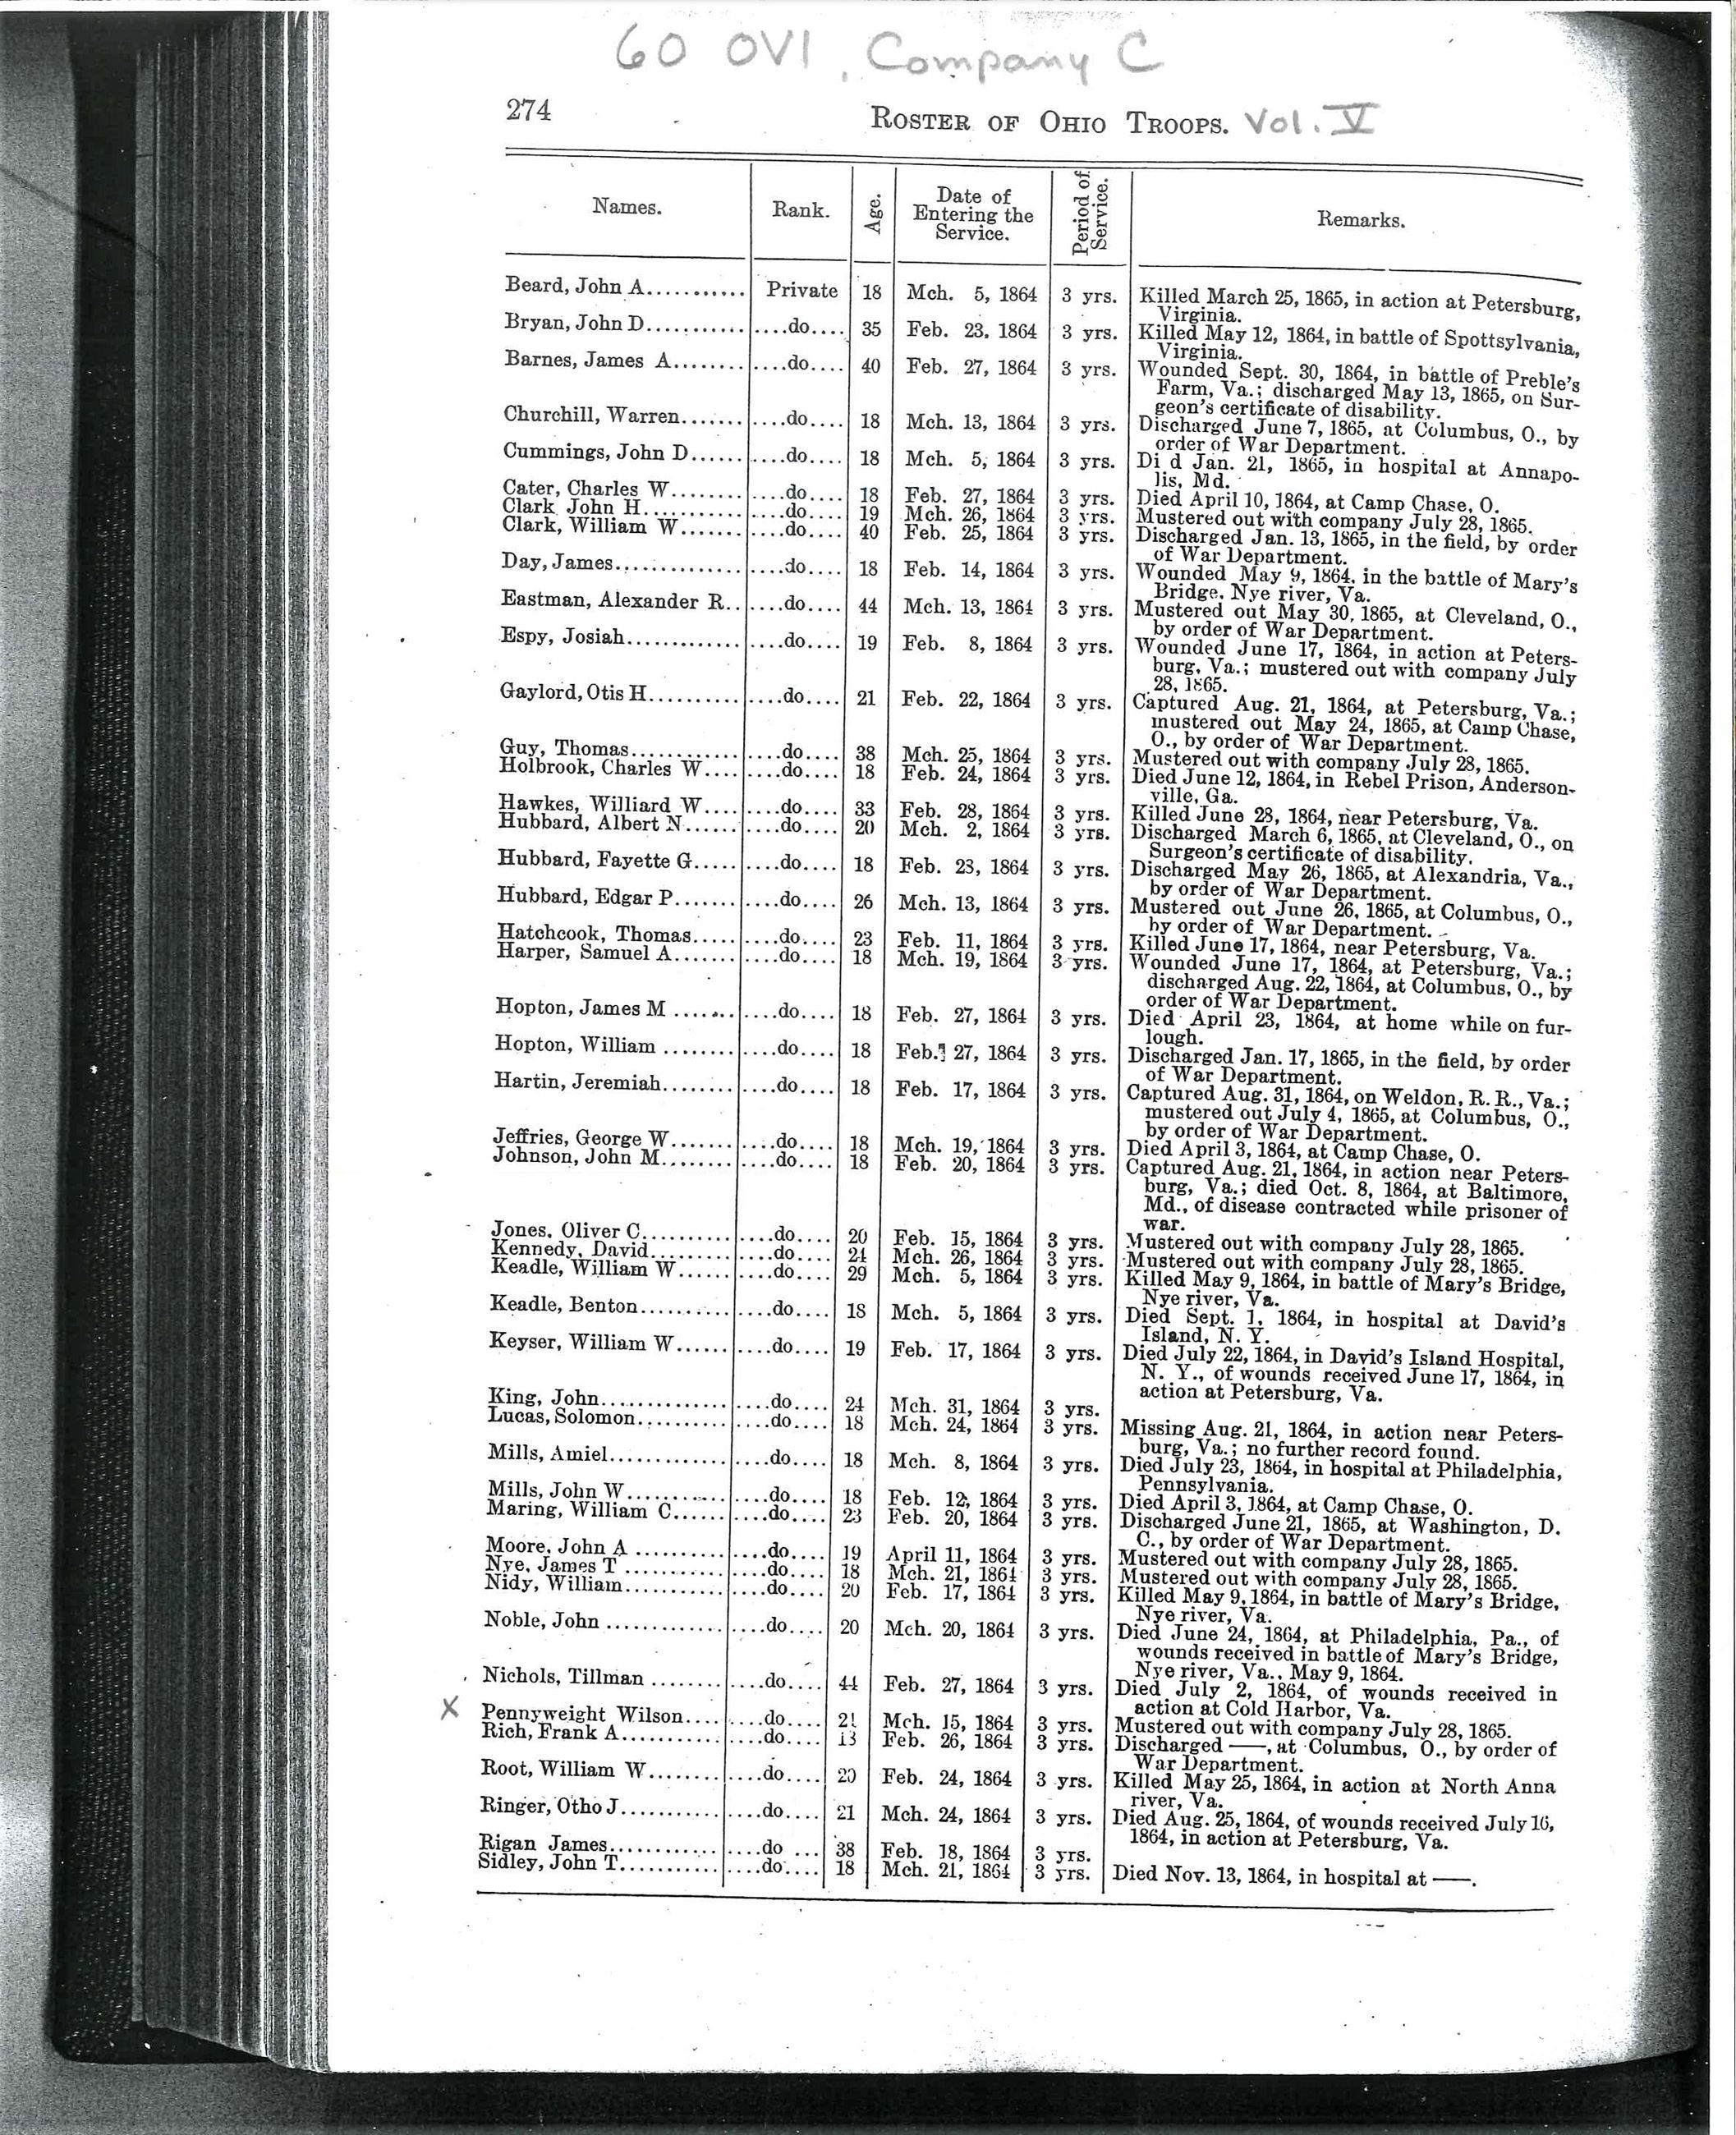 Roster of Ohio Troops Vol V p274